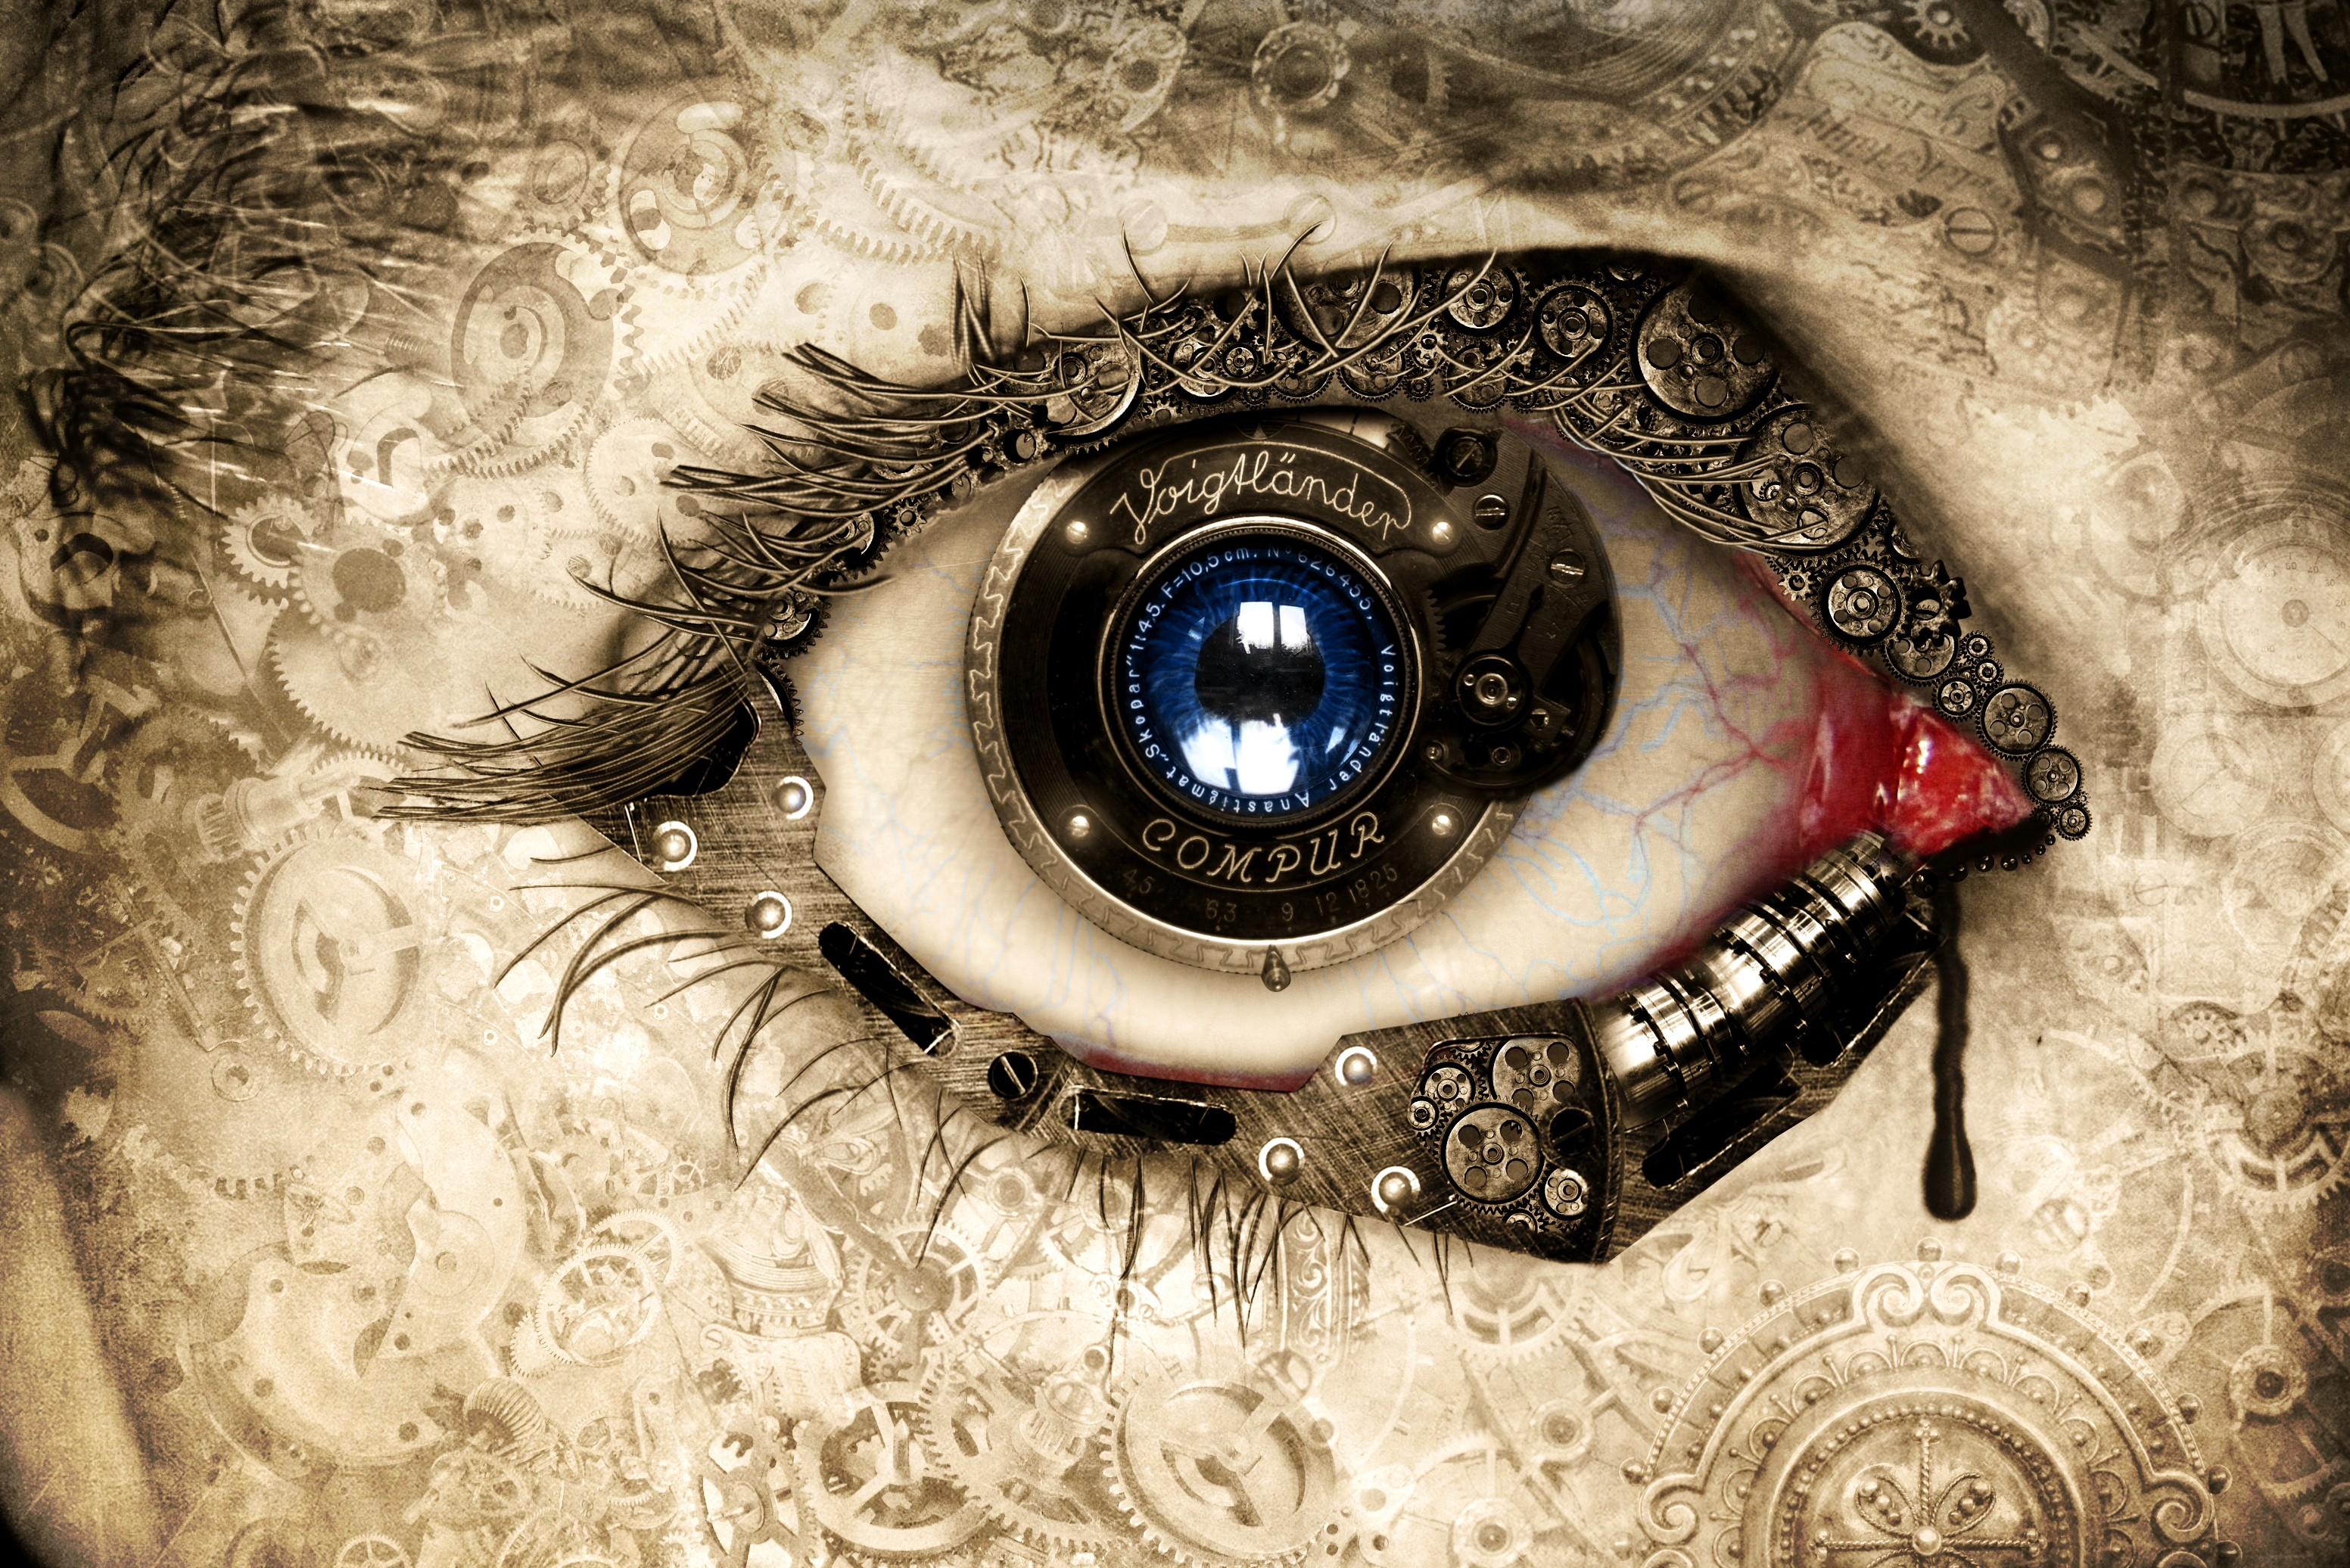 Clock eye hd creative 4k wallpapers images backgrounds photos and pictures - Eye drawing wallpaper ...